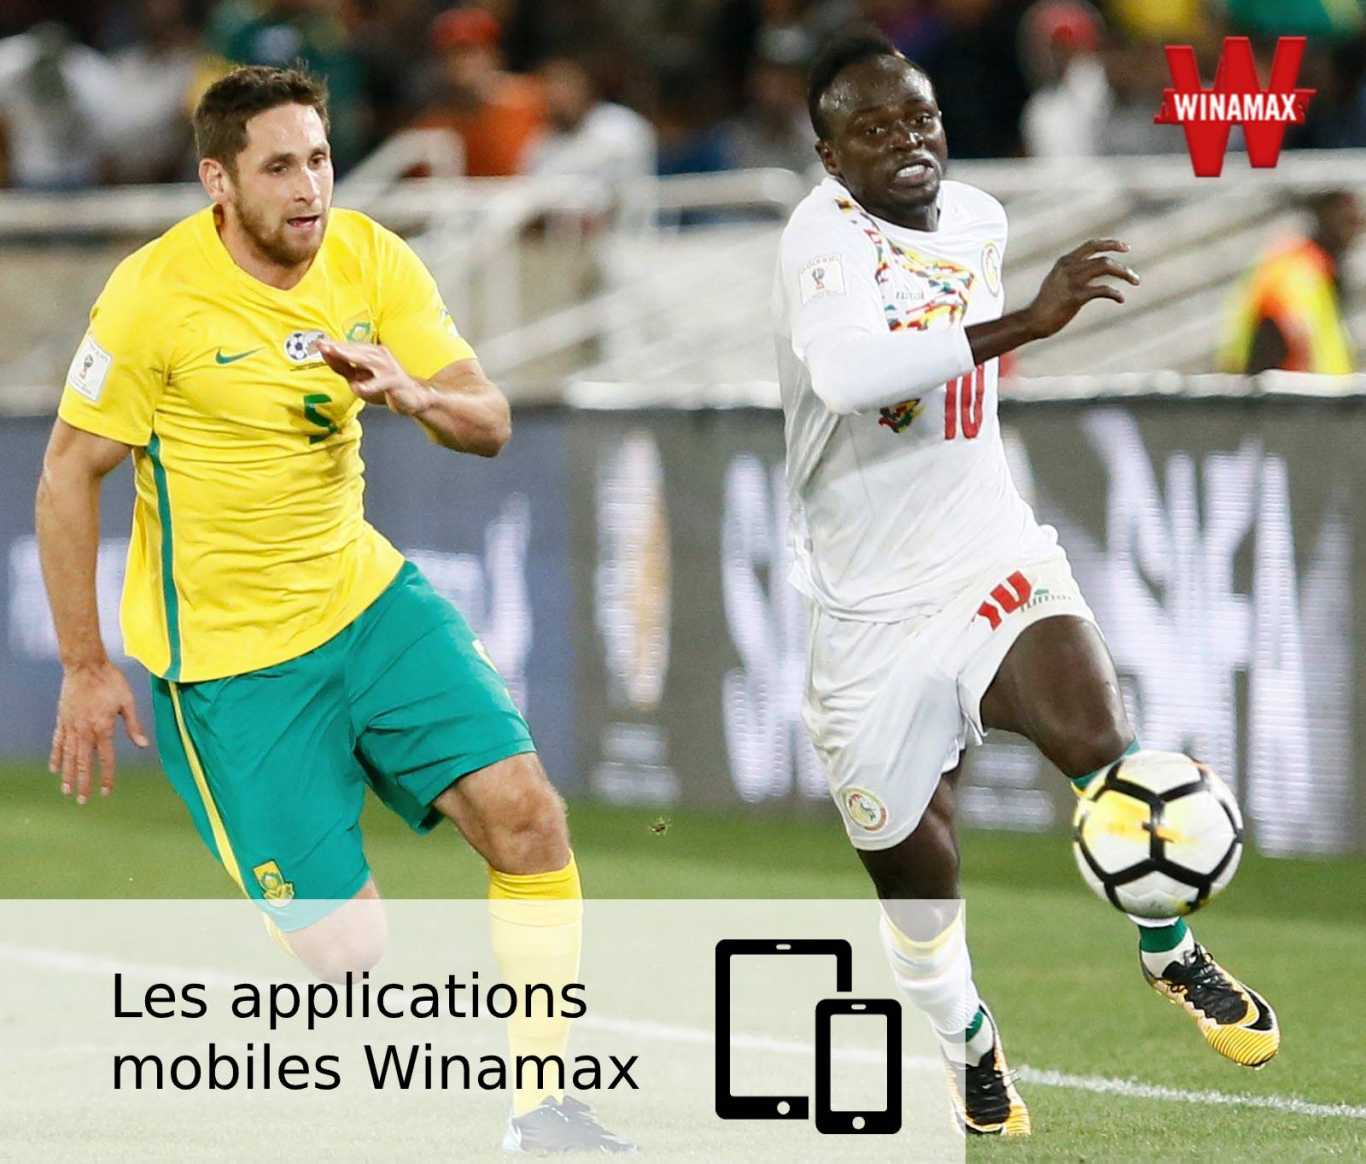 Les applications mobiles Winamax